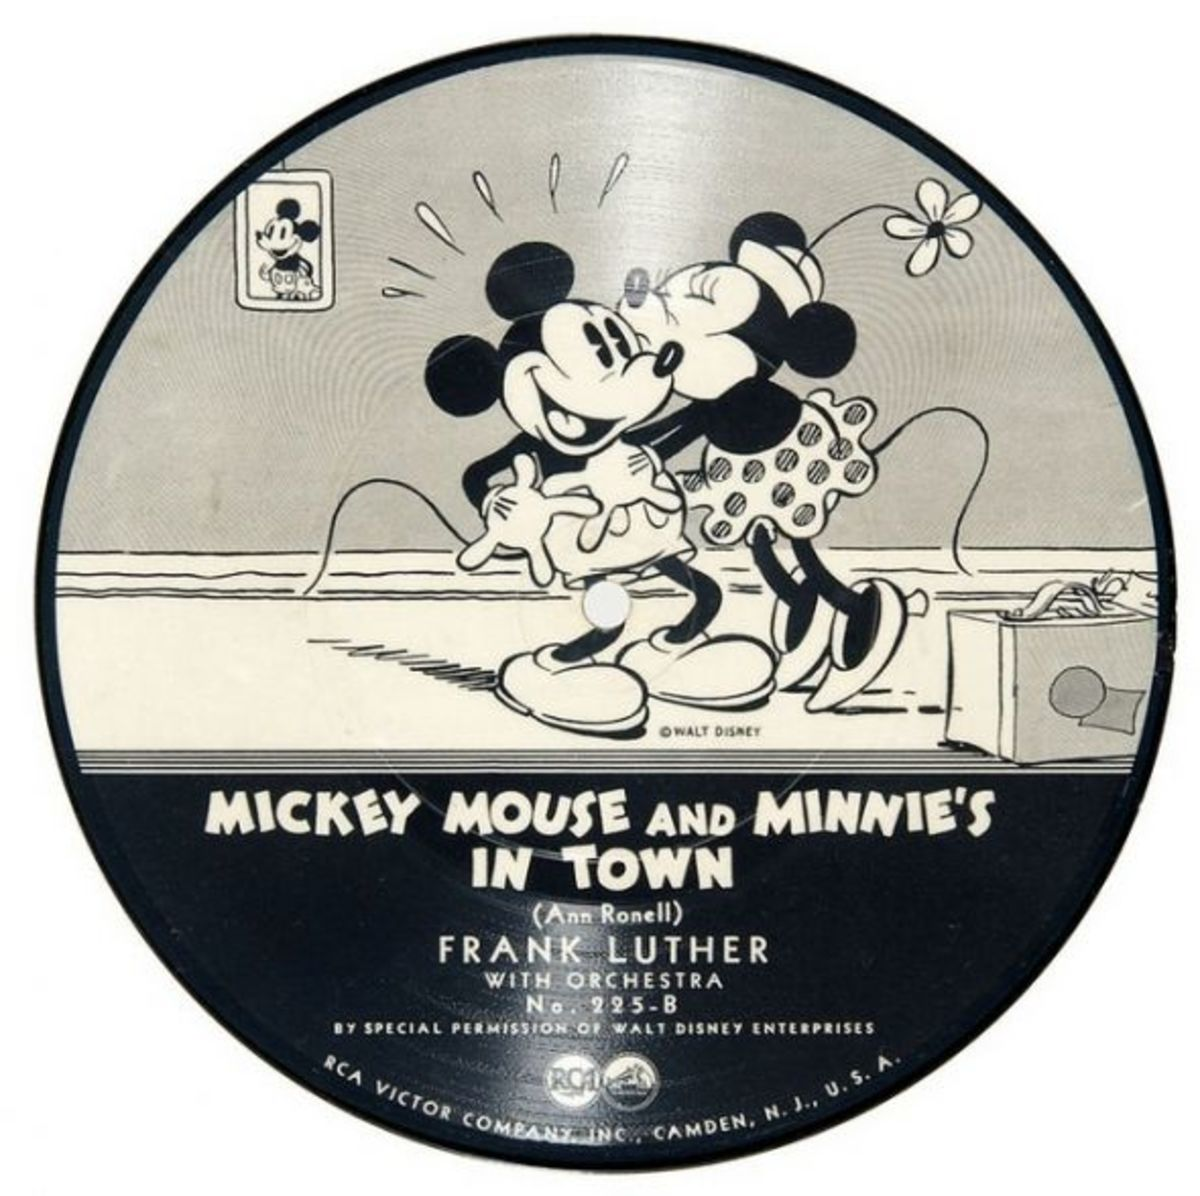 "Frank Luther and His Orchestra ""Mickey Mouse and Minnie's Mouse In Town"" RCA Victor 225 B 7"" 78 rpm Shellac Record Silly Symphony"